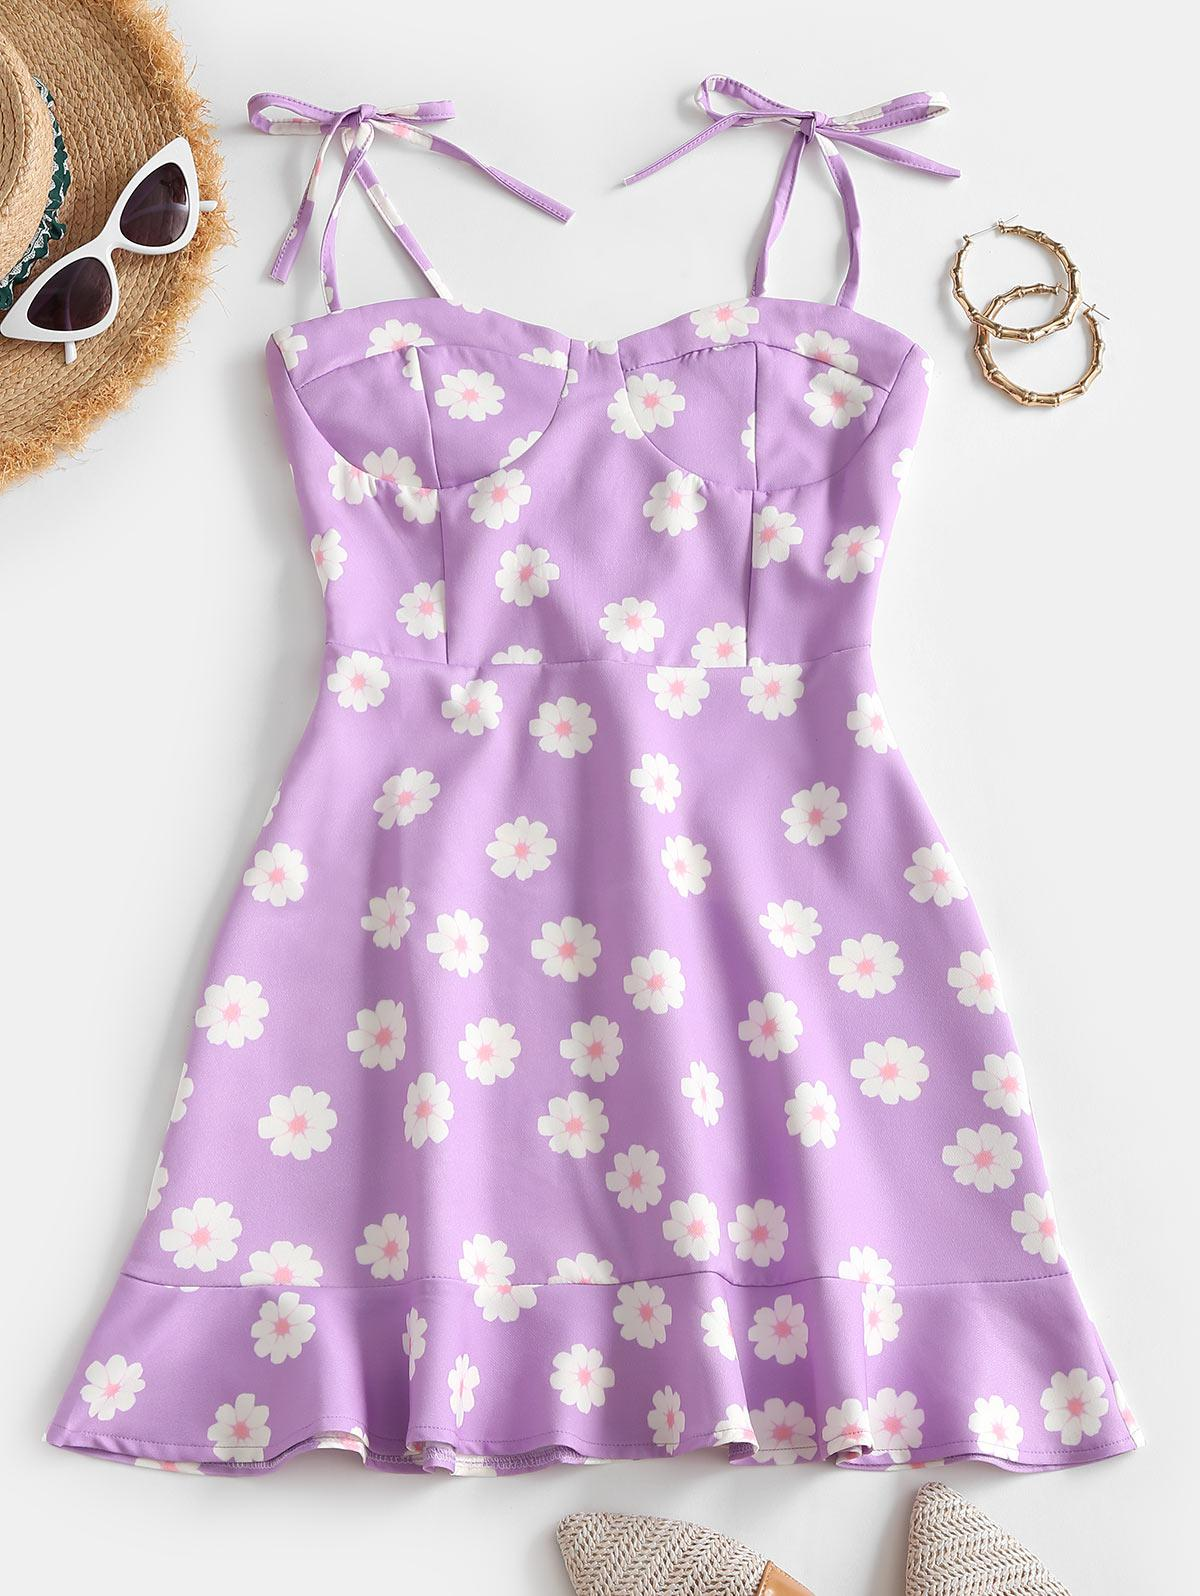 Peplum Hem Tie Shoulder Floral Mini Dress